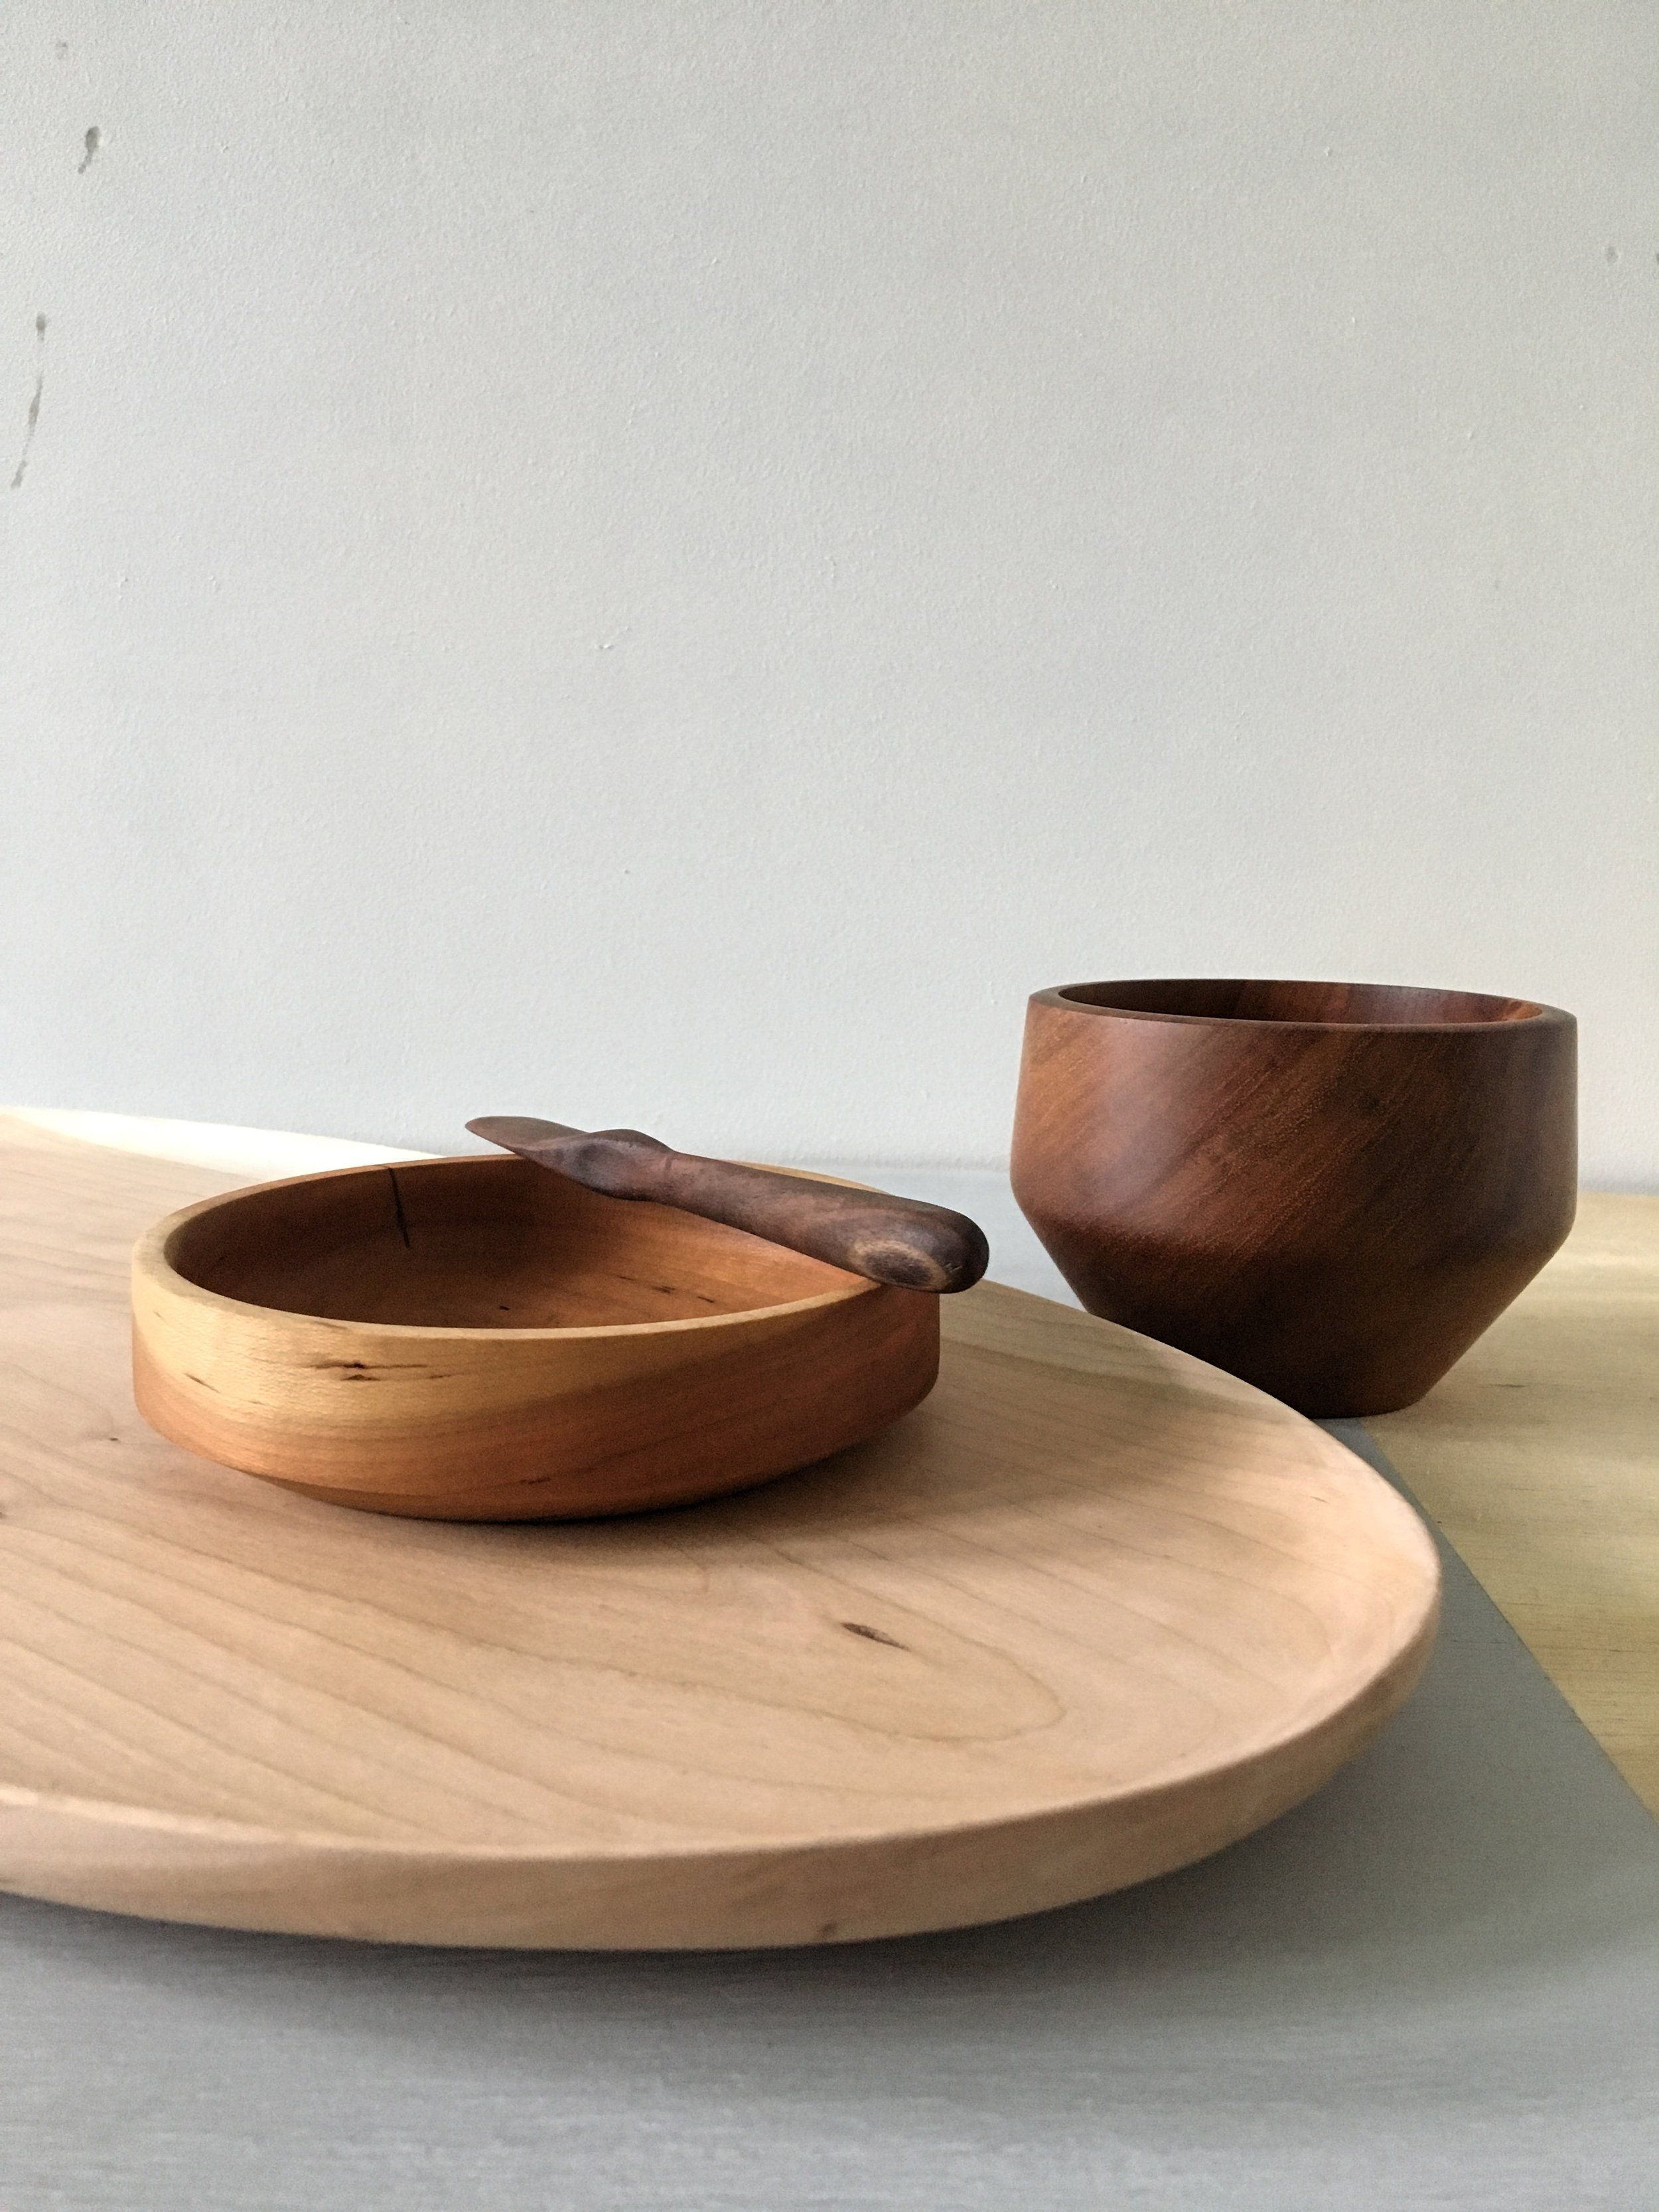 Carved tray with bowls and knife